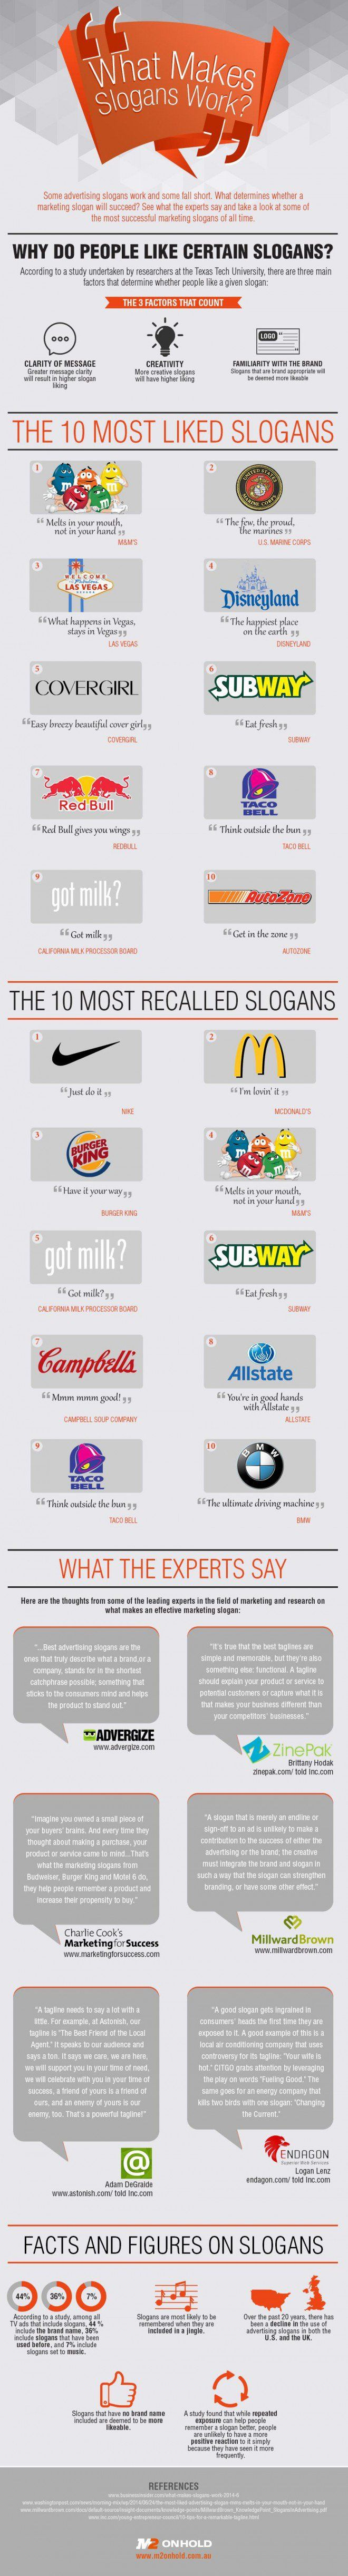 Branding Tips: How to Write a Memorable Tagline or Slogan